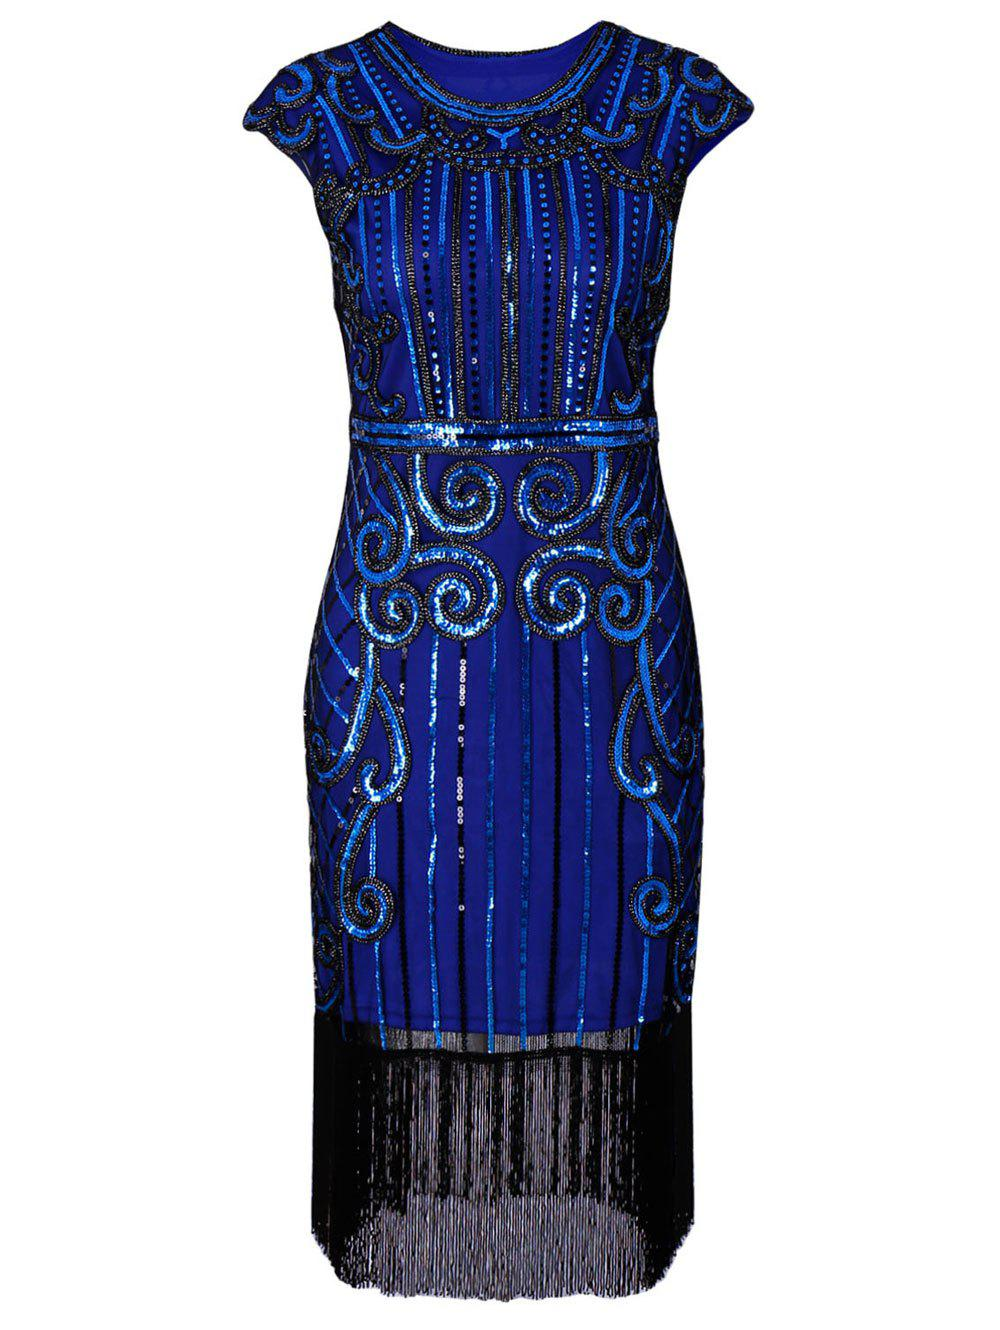 Sequins Fringe Cap Sleeve Vintage Party DressWOMEN<br><br>Size: L; Color: BLUE; Style: Vintage; Material: Polyester,Spandex; Silhouette: Sheath; Dresses Length: Knee-Length; Neckline: Round Collar; Sleeve Length: Short Sleeves; Embellishment: Sequins; Pattern Type: Others; With Belt: No; Season: Fall,Spring; Weight: 0.3900kg; Package Contents: 1 x Dress;